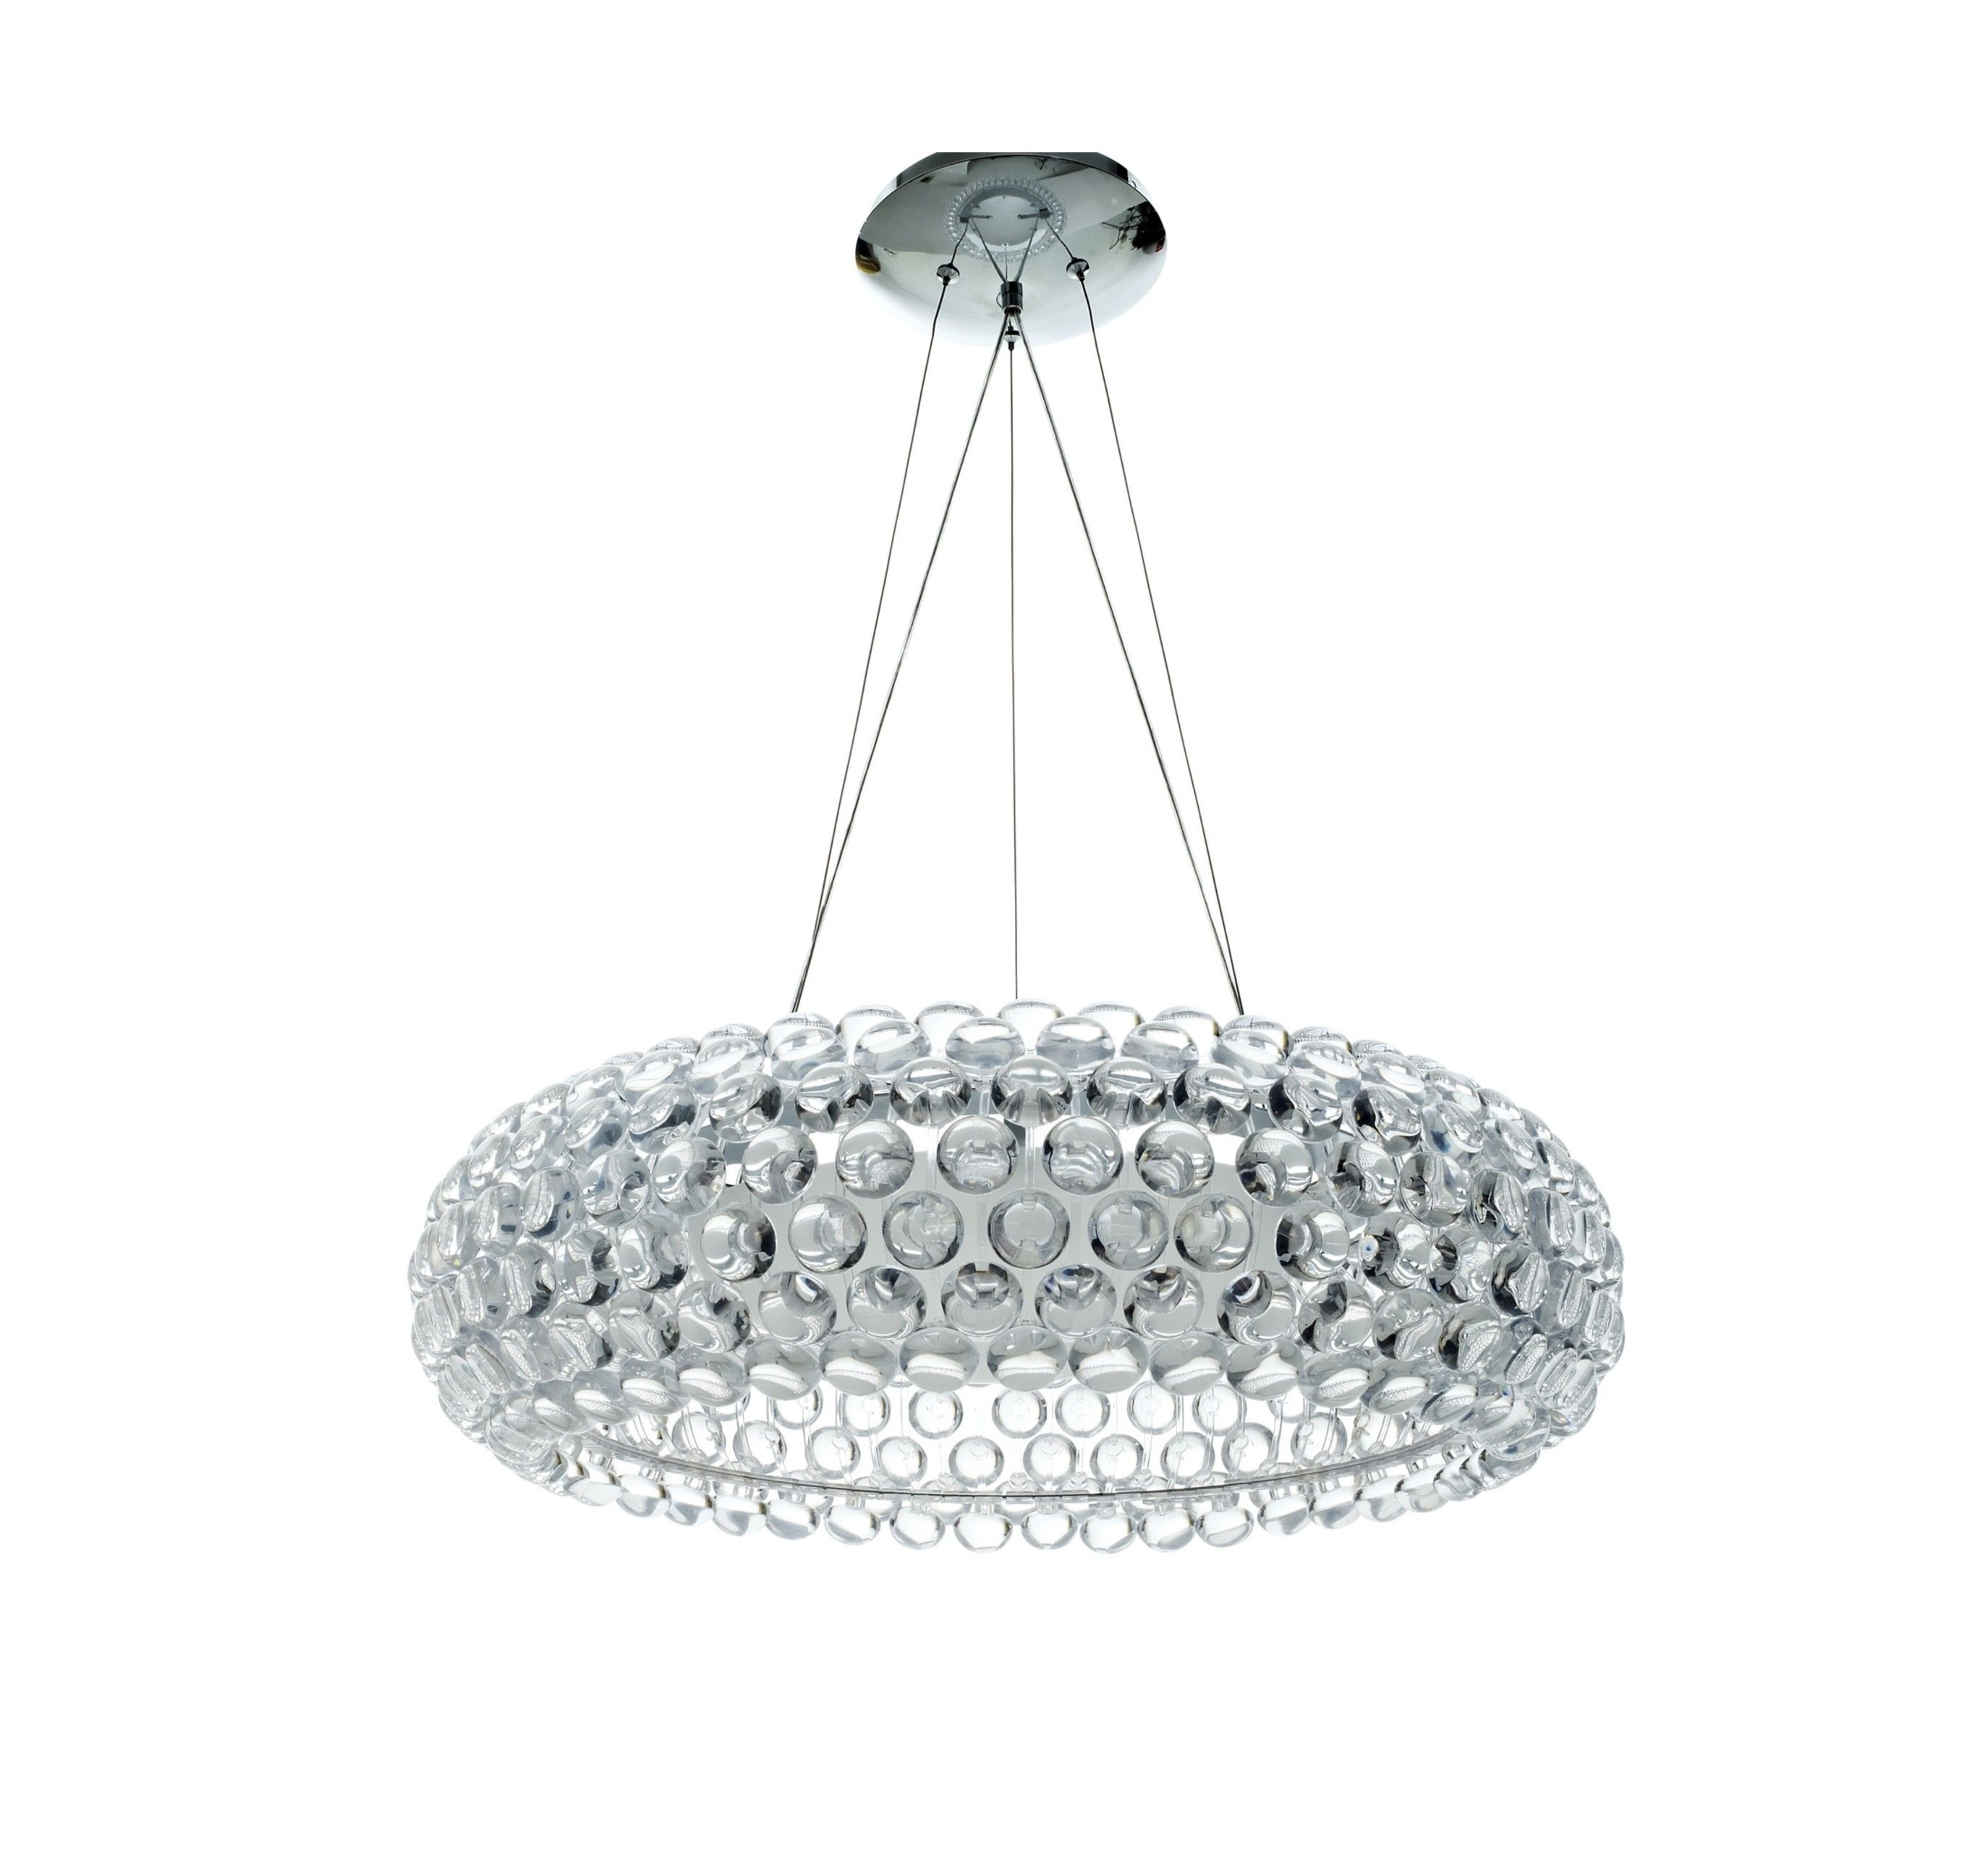 Small Crystal Chandeliers For Bedrooms Decoration Ideas Stylish Round Modern Crystal Chandelier Design